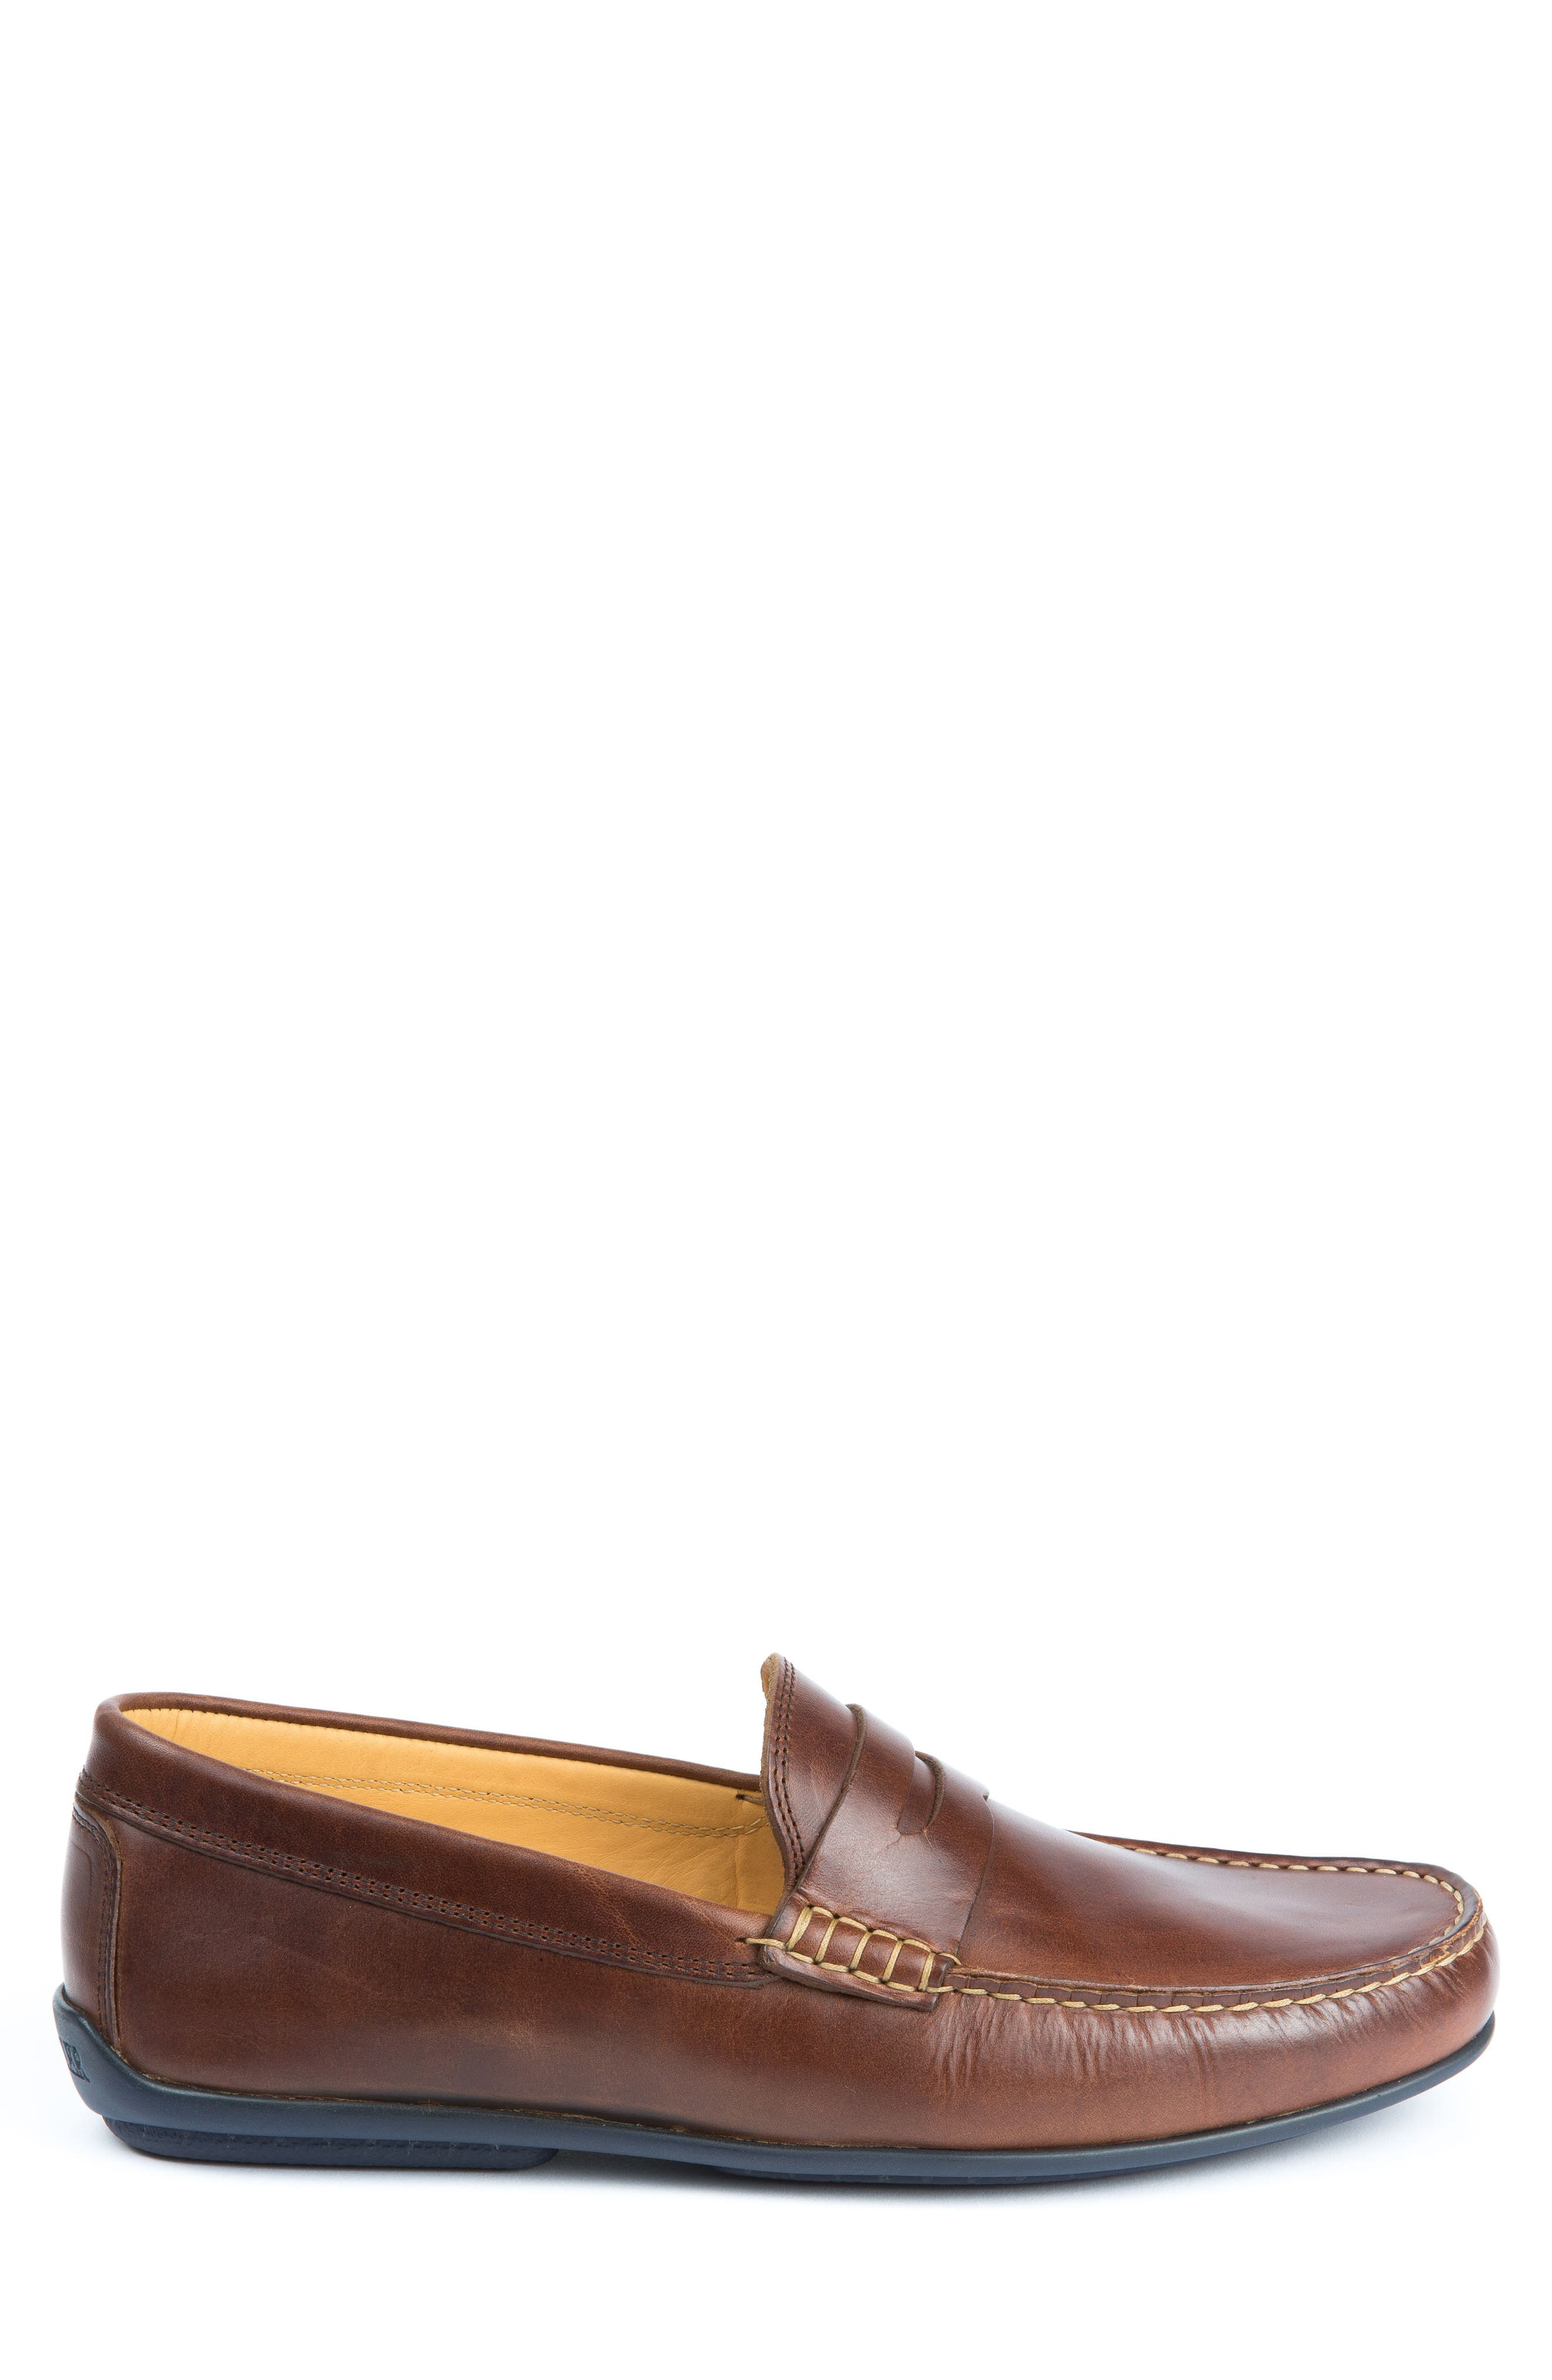 'Clinton' Leather Penny Loafer,                             Alternate thumbnail 4, color,                             LIGHT BROWN